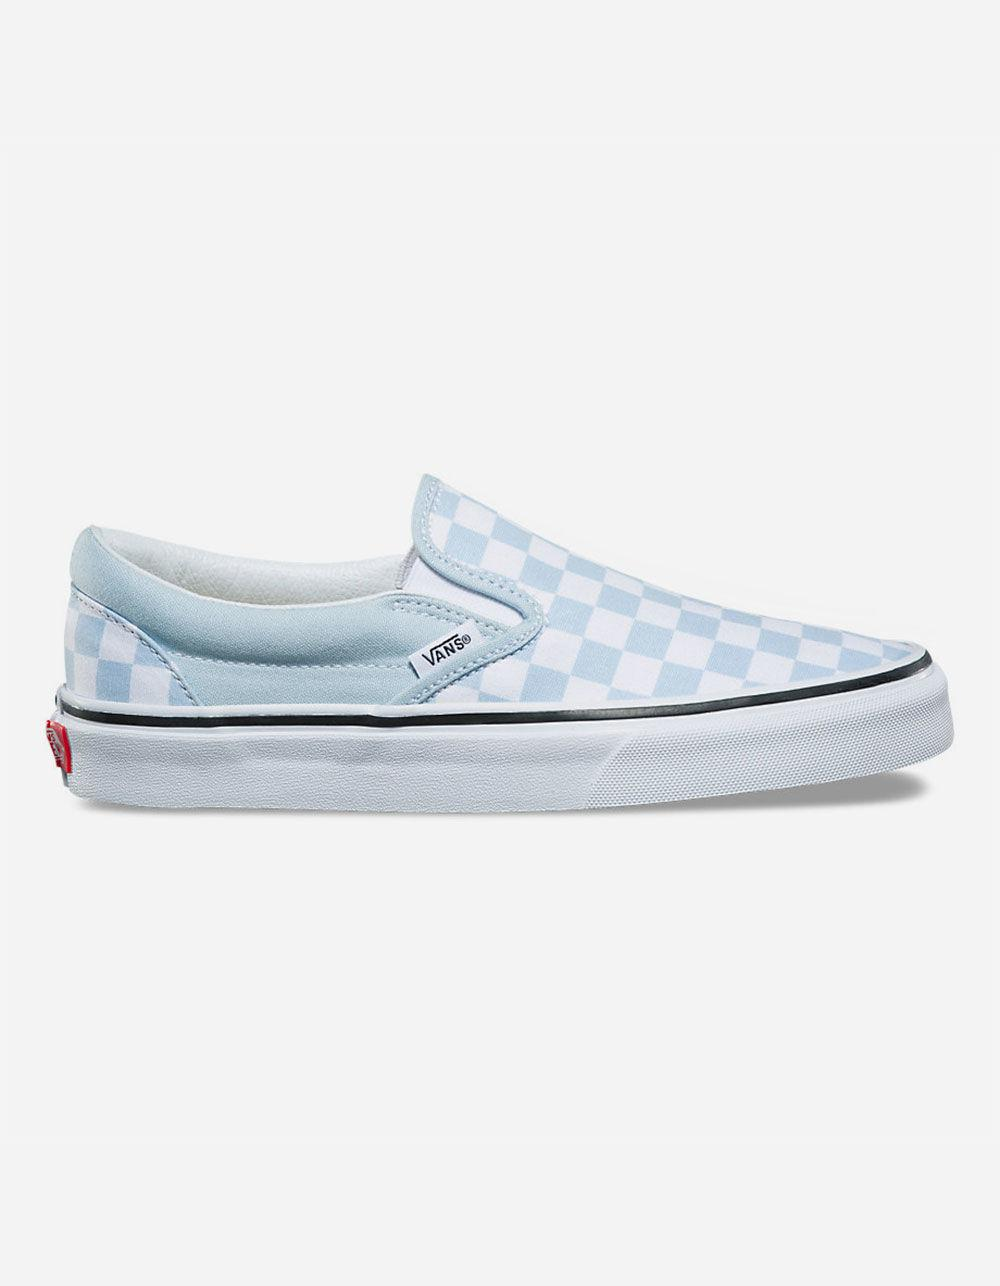 a2949e0479 Lyst - Vans Checkerboard Baby Blue Womens Slip-on Shoes in Blue